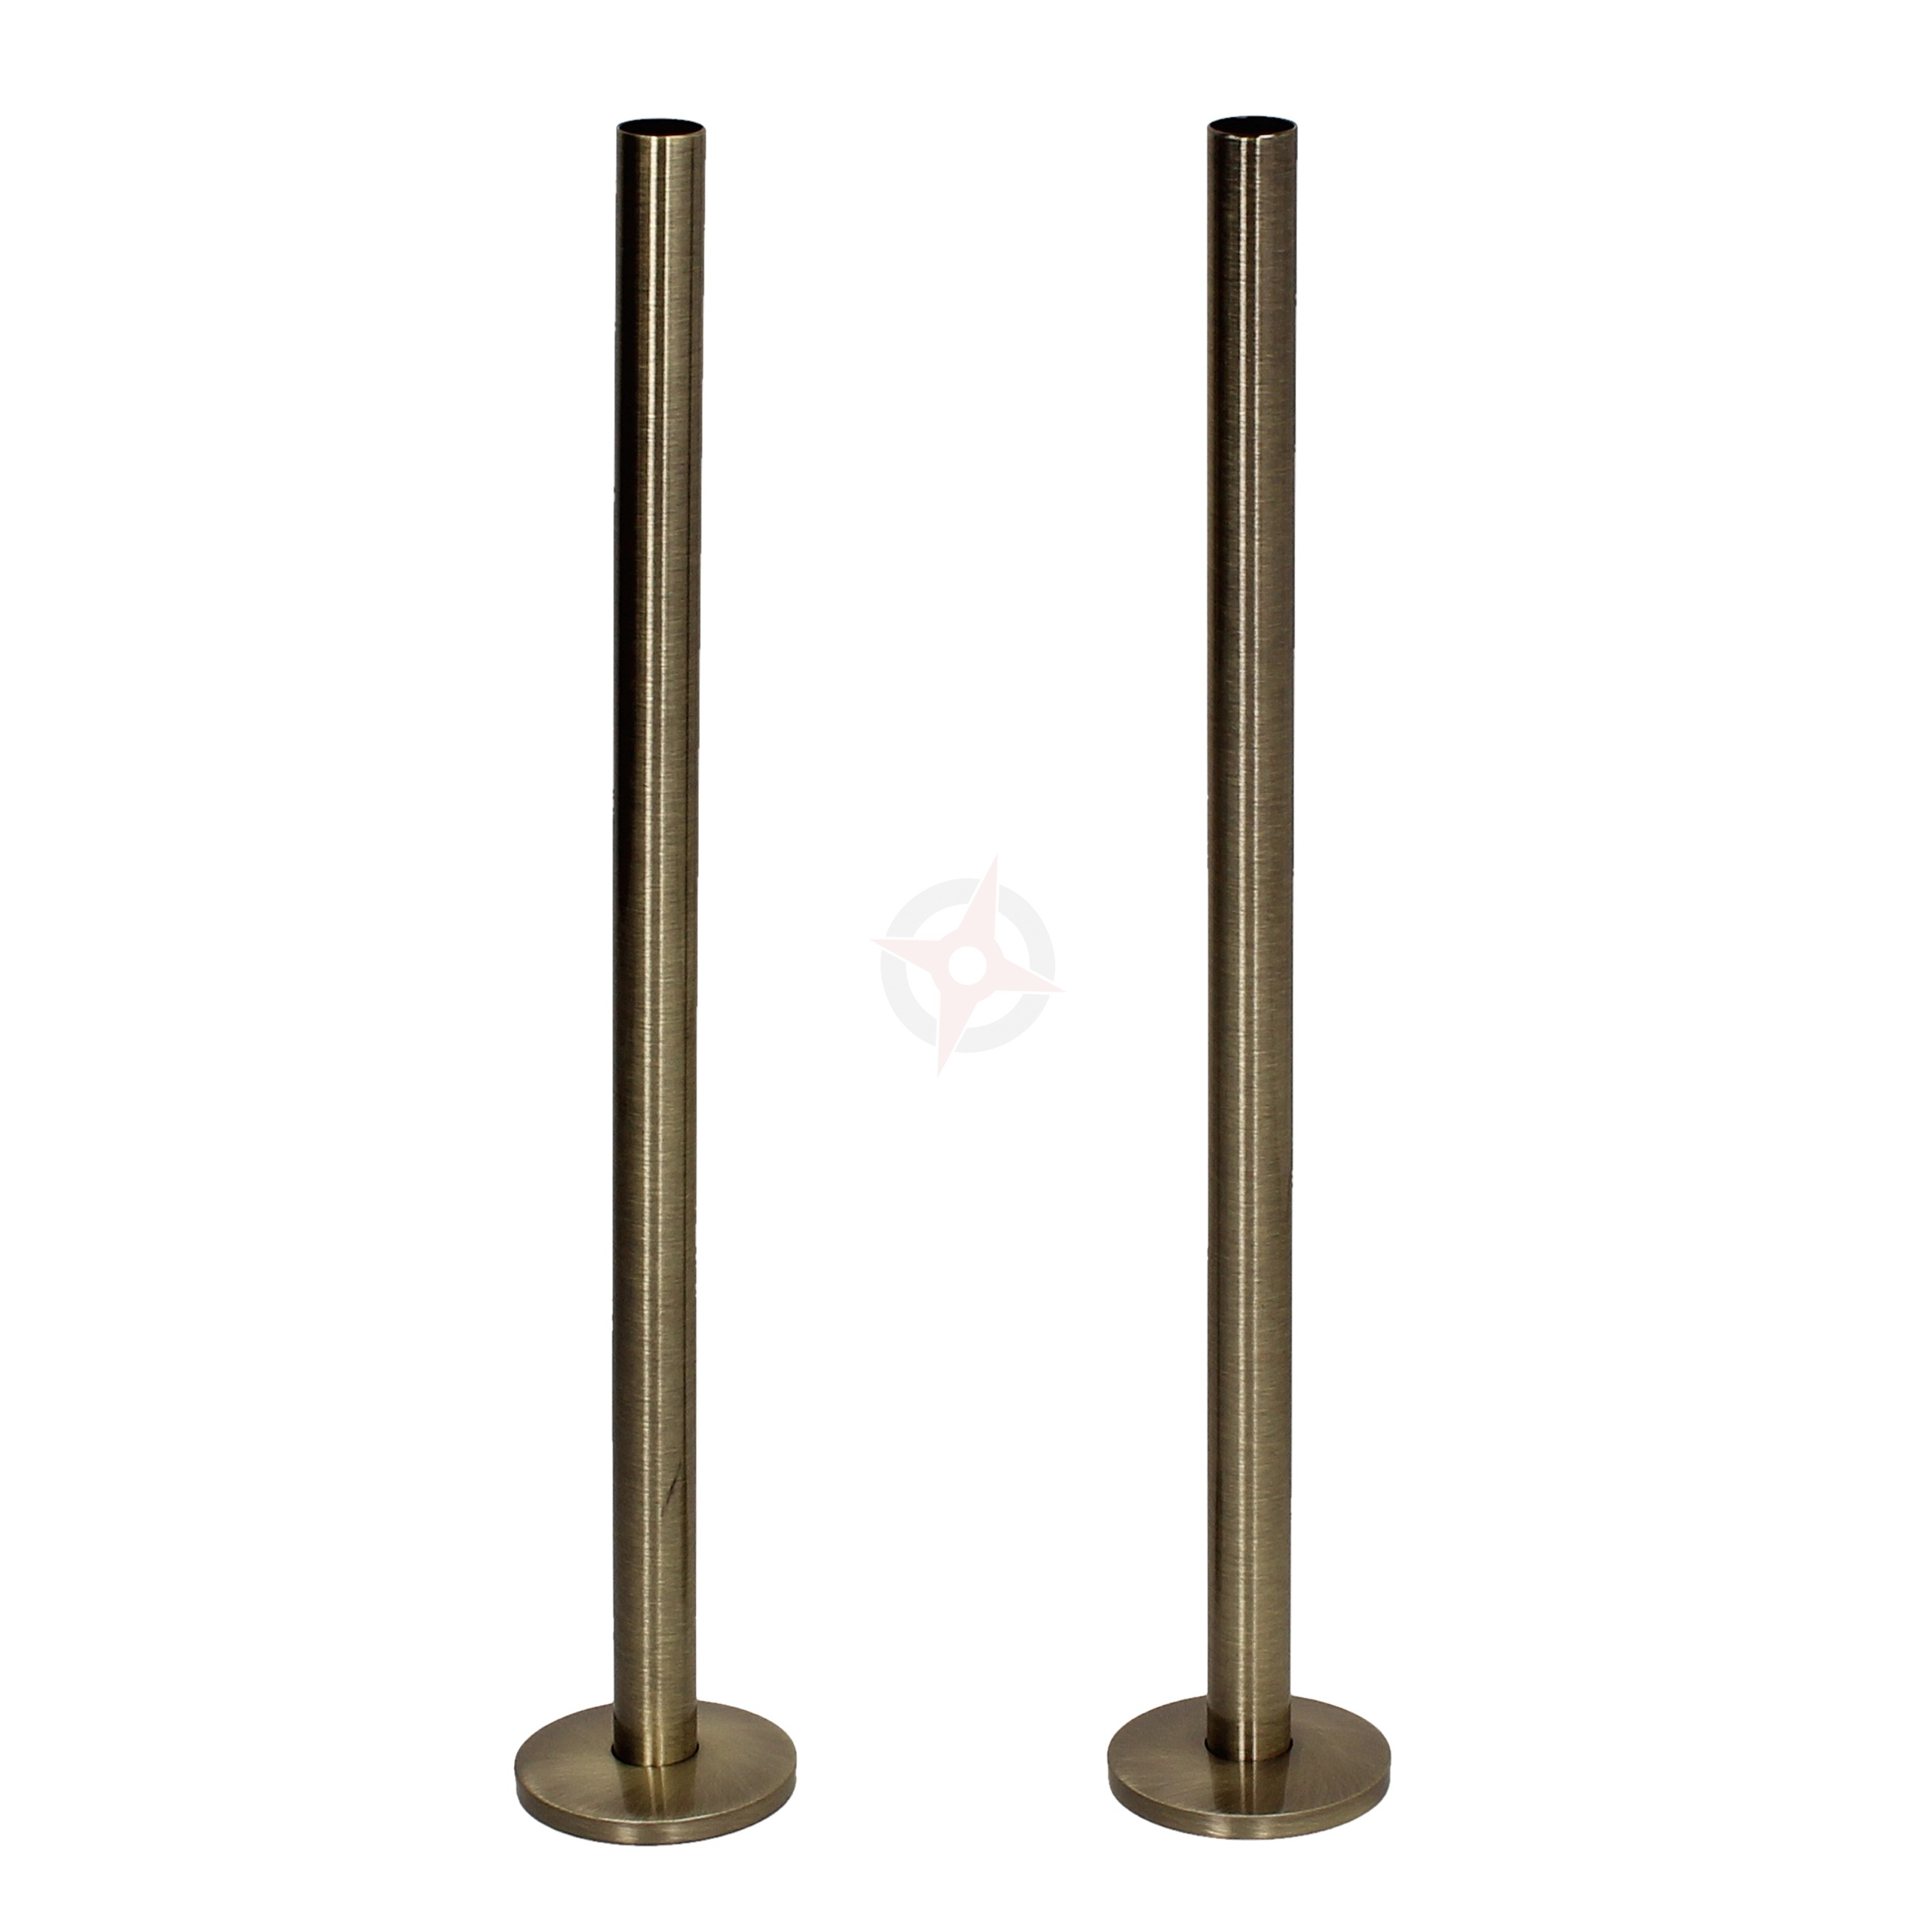 Antique Brass 15mm x 300mm Pipe Tails and Decoration Floor Plates (Pair)